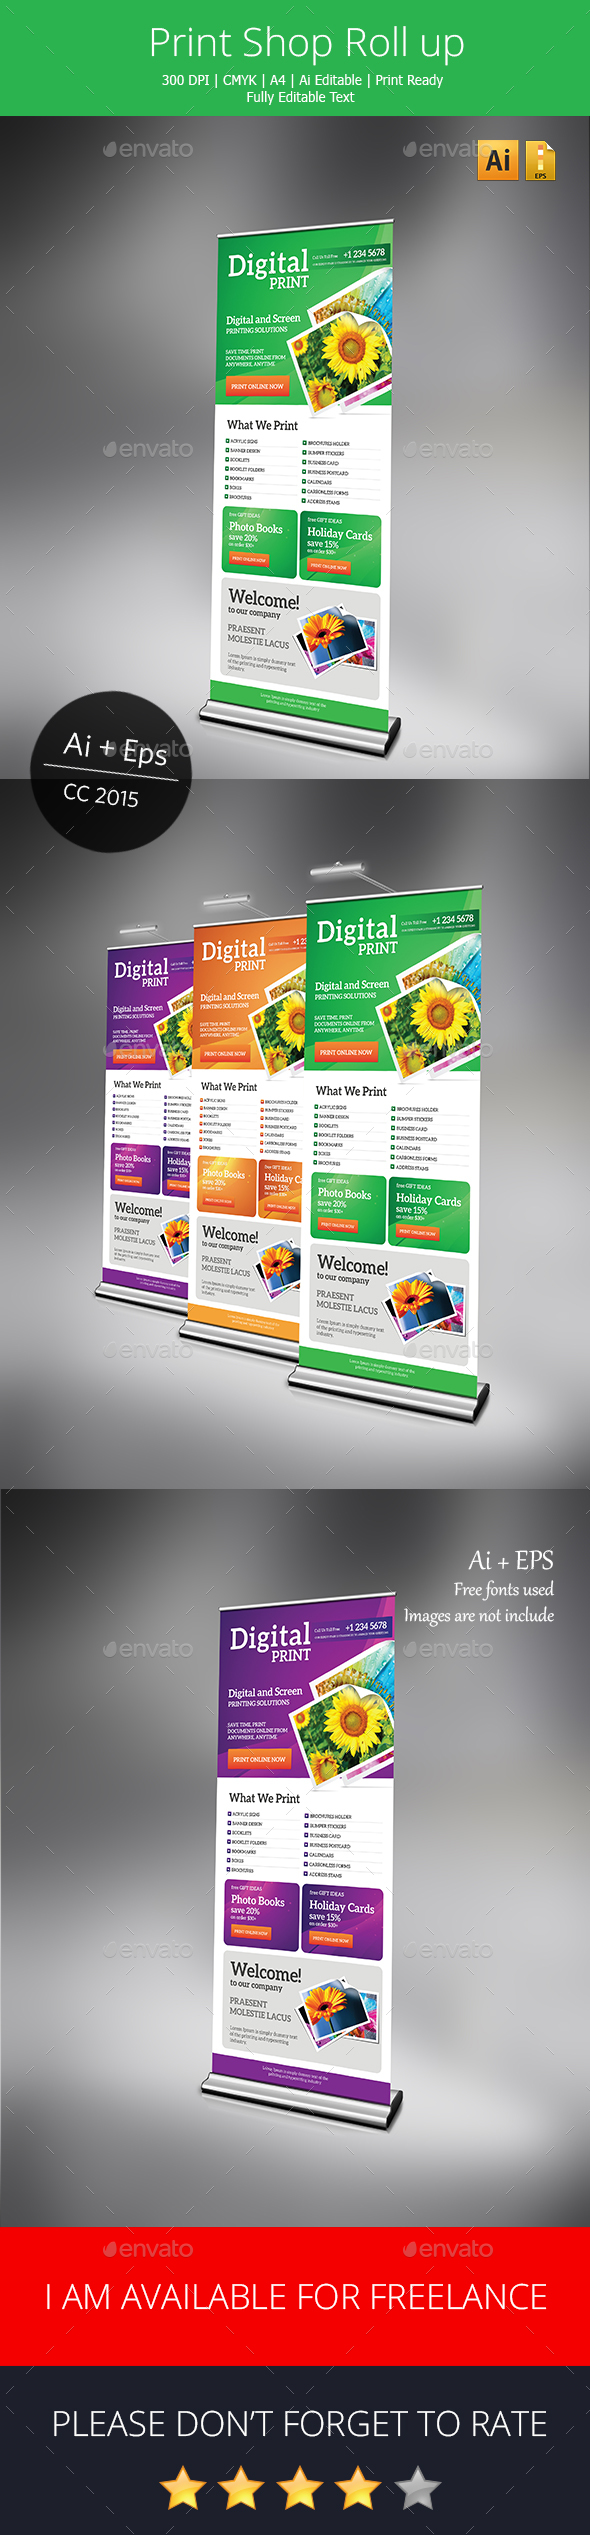 print shop roll up banner pinterest banners print templates and